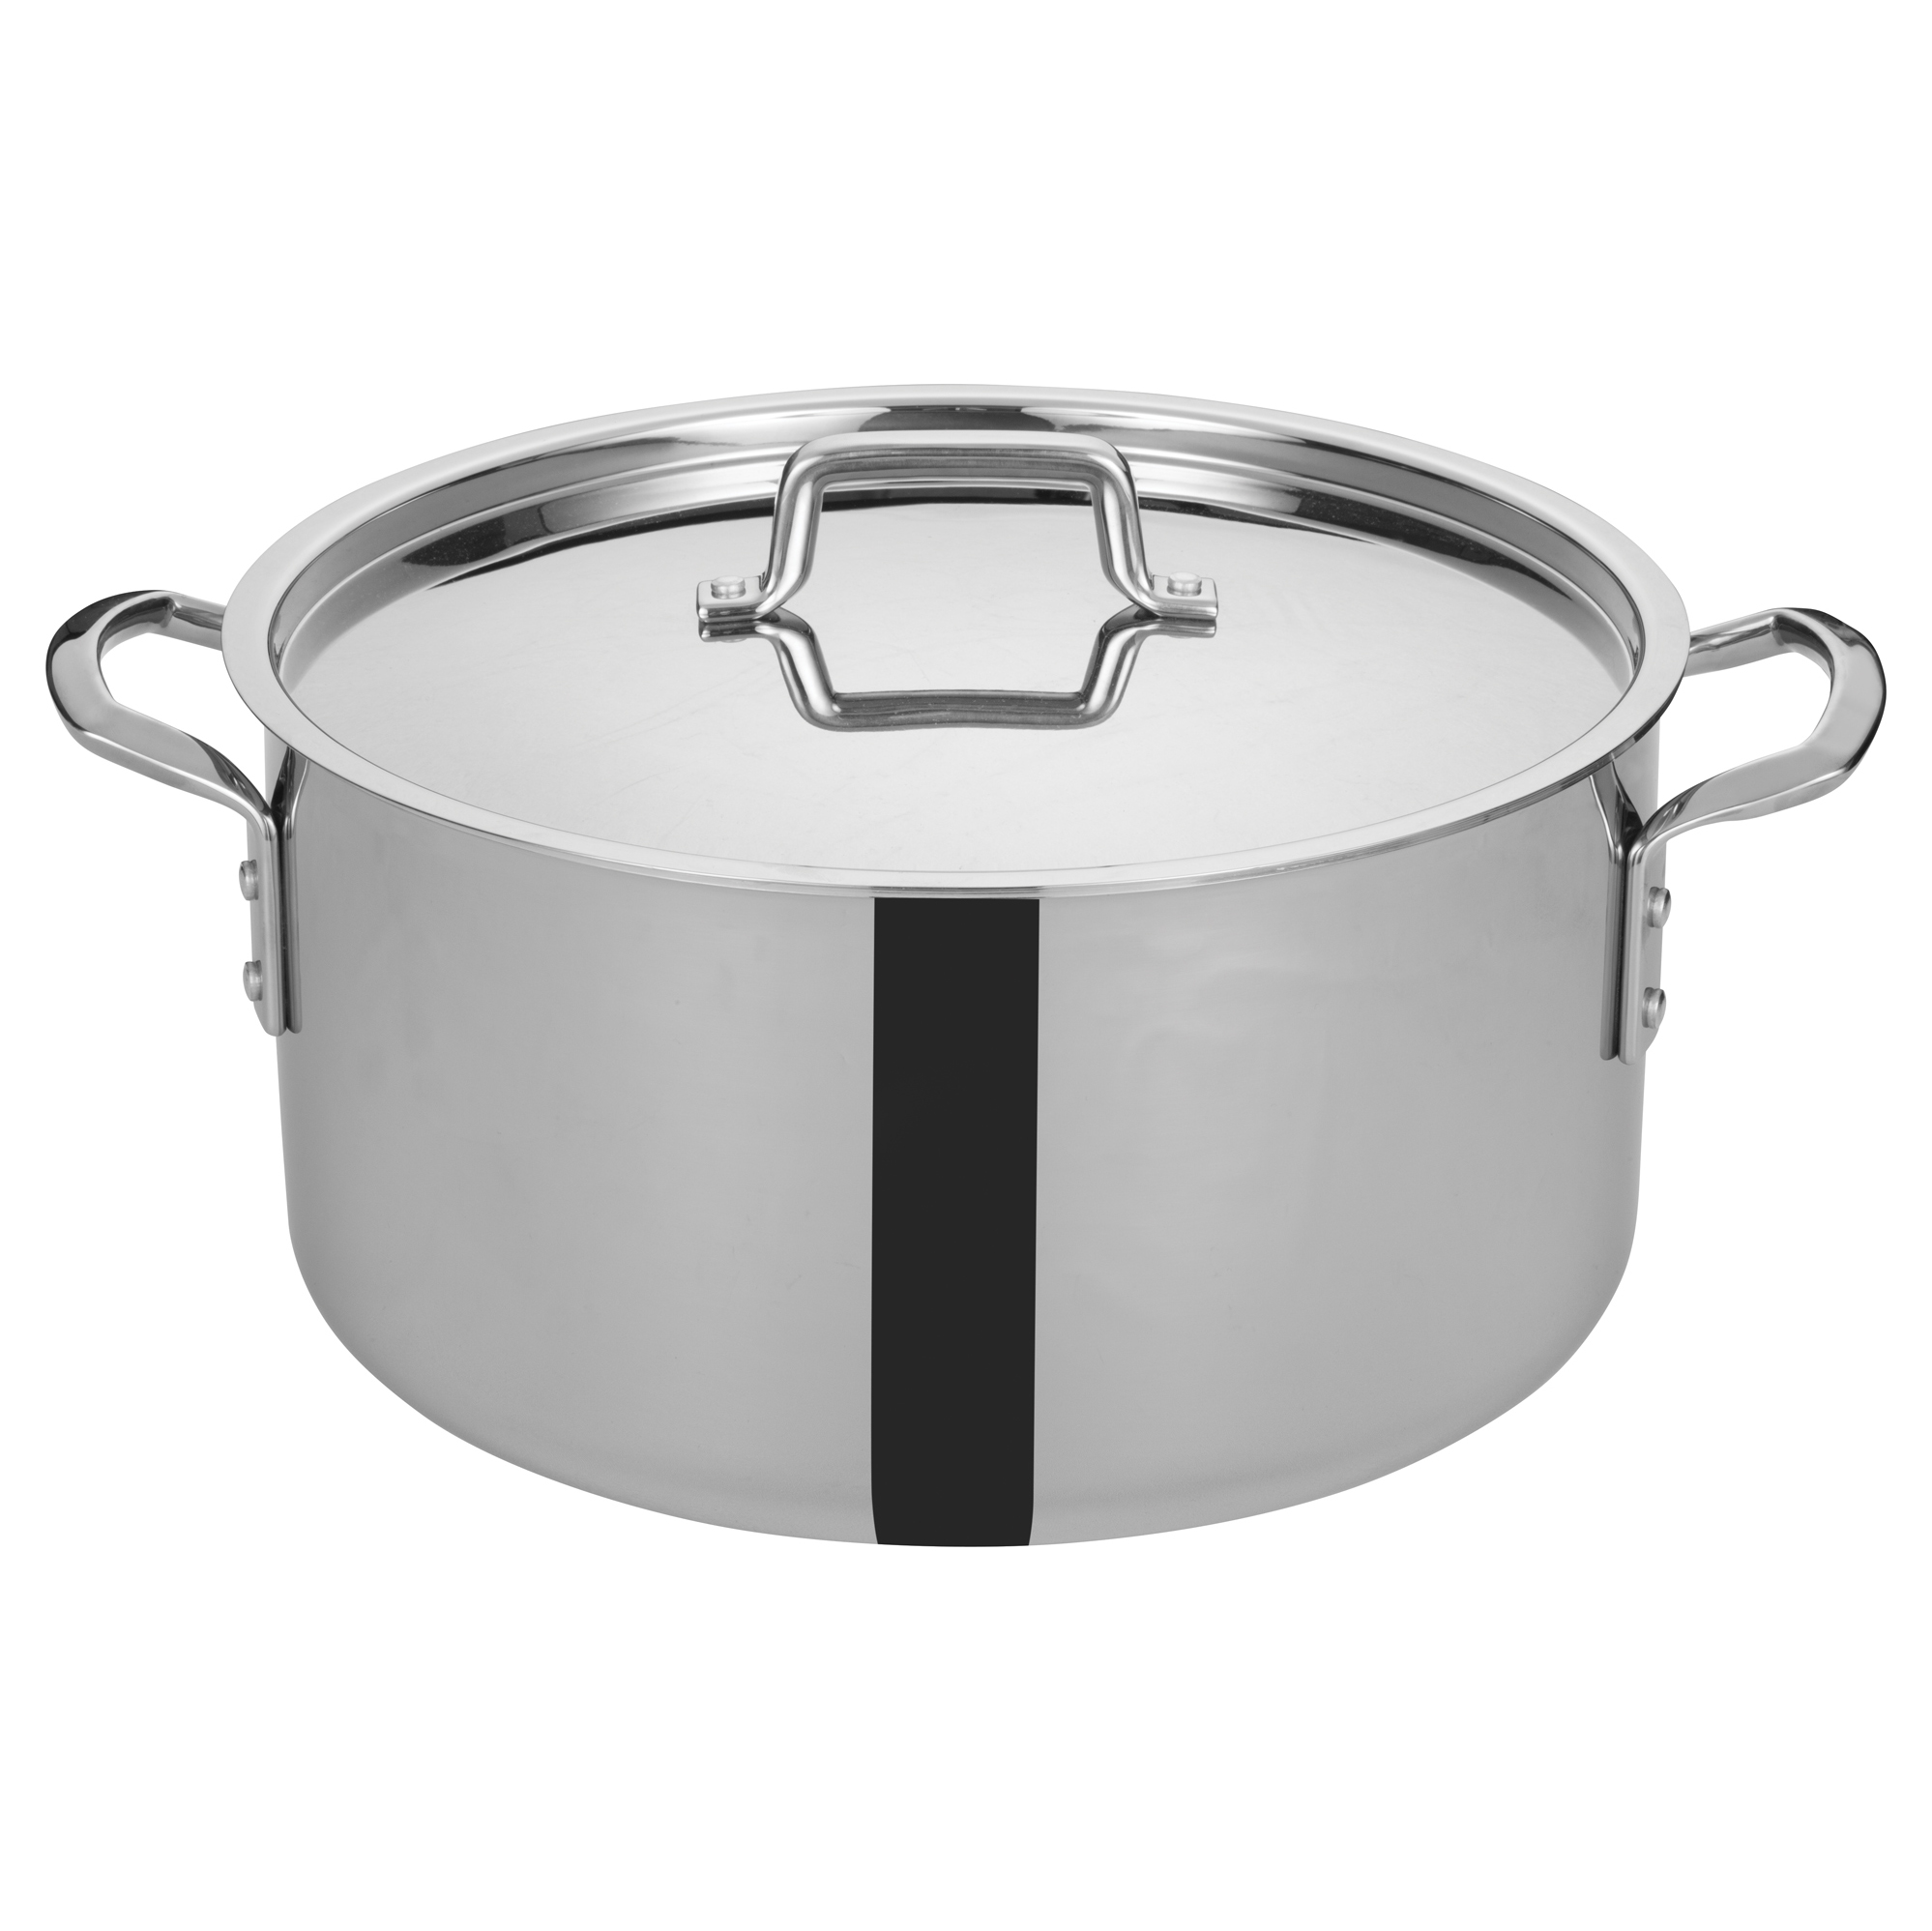 Winco TGSP-20 stock pot